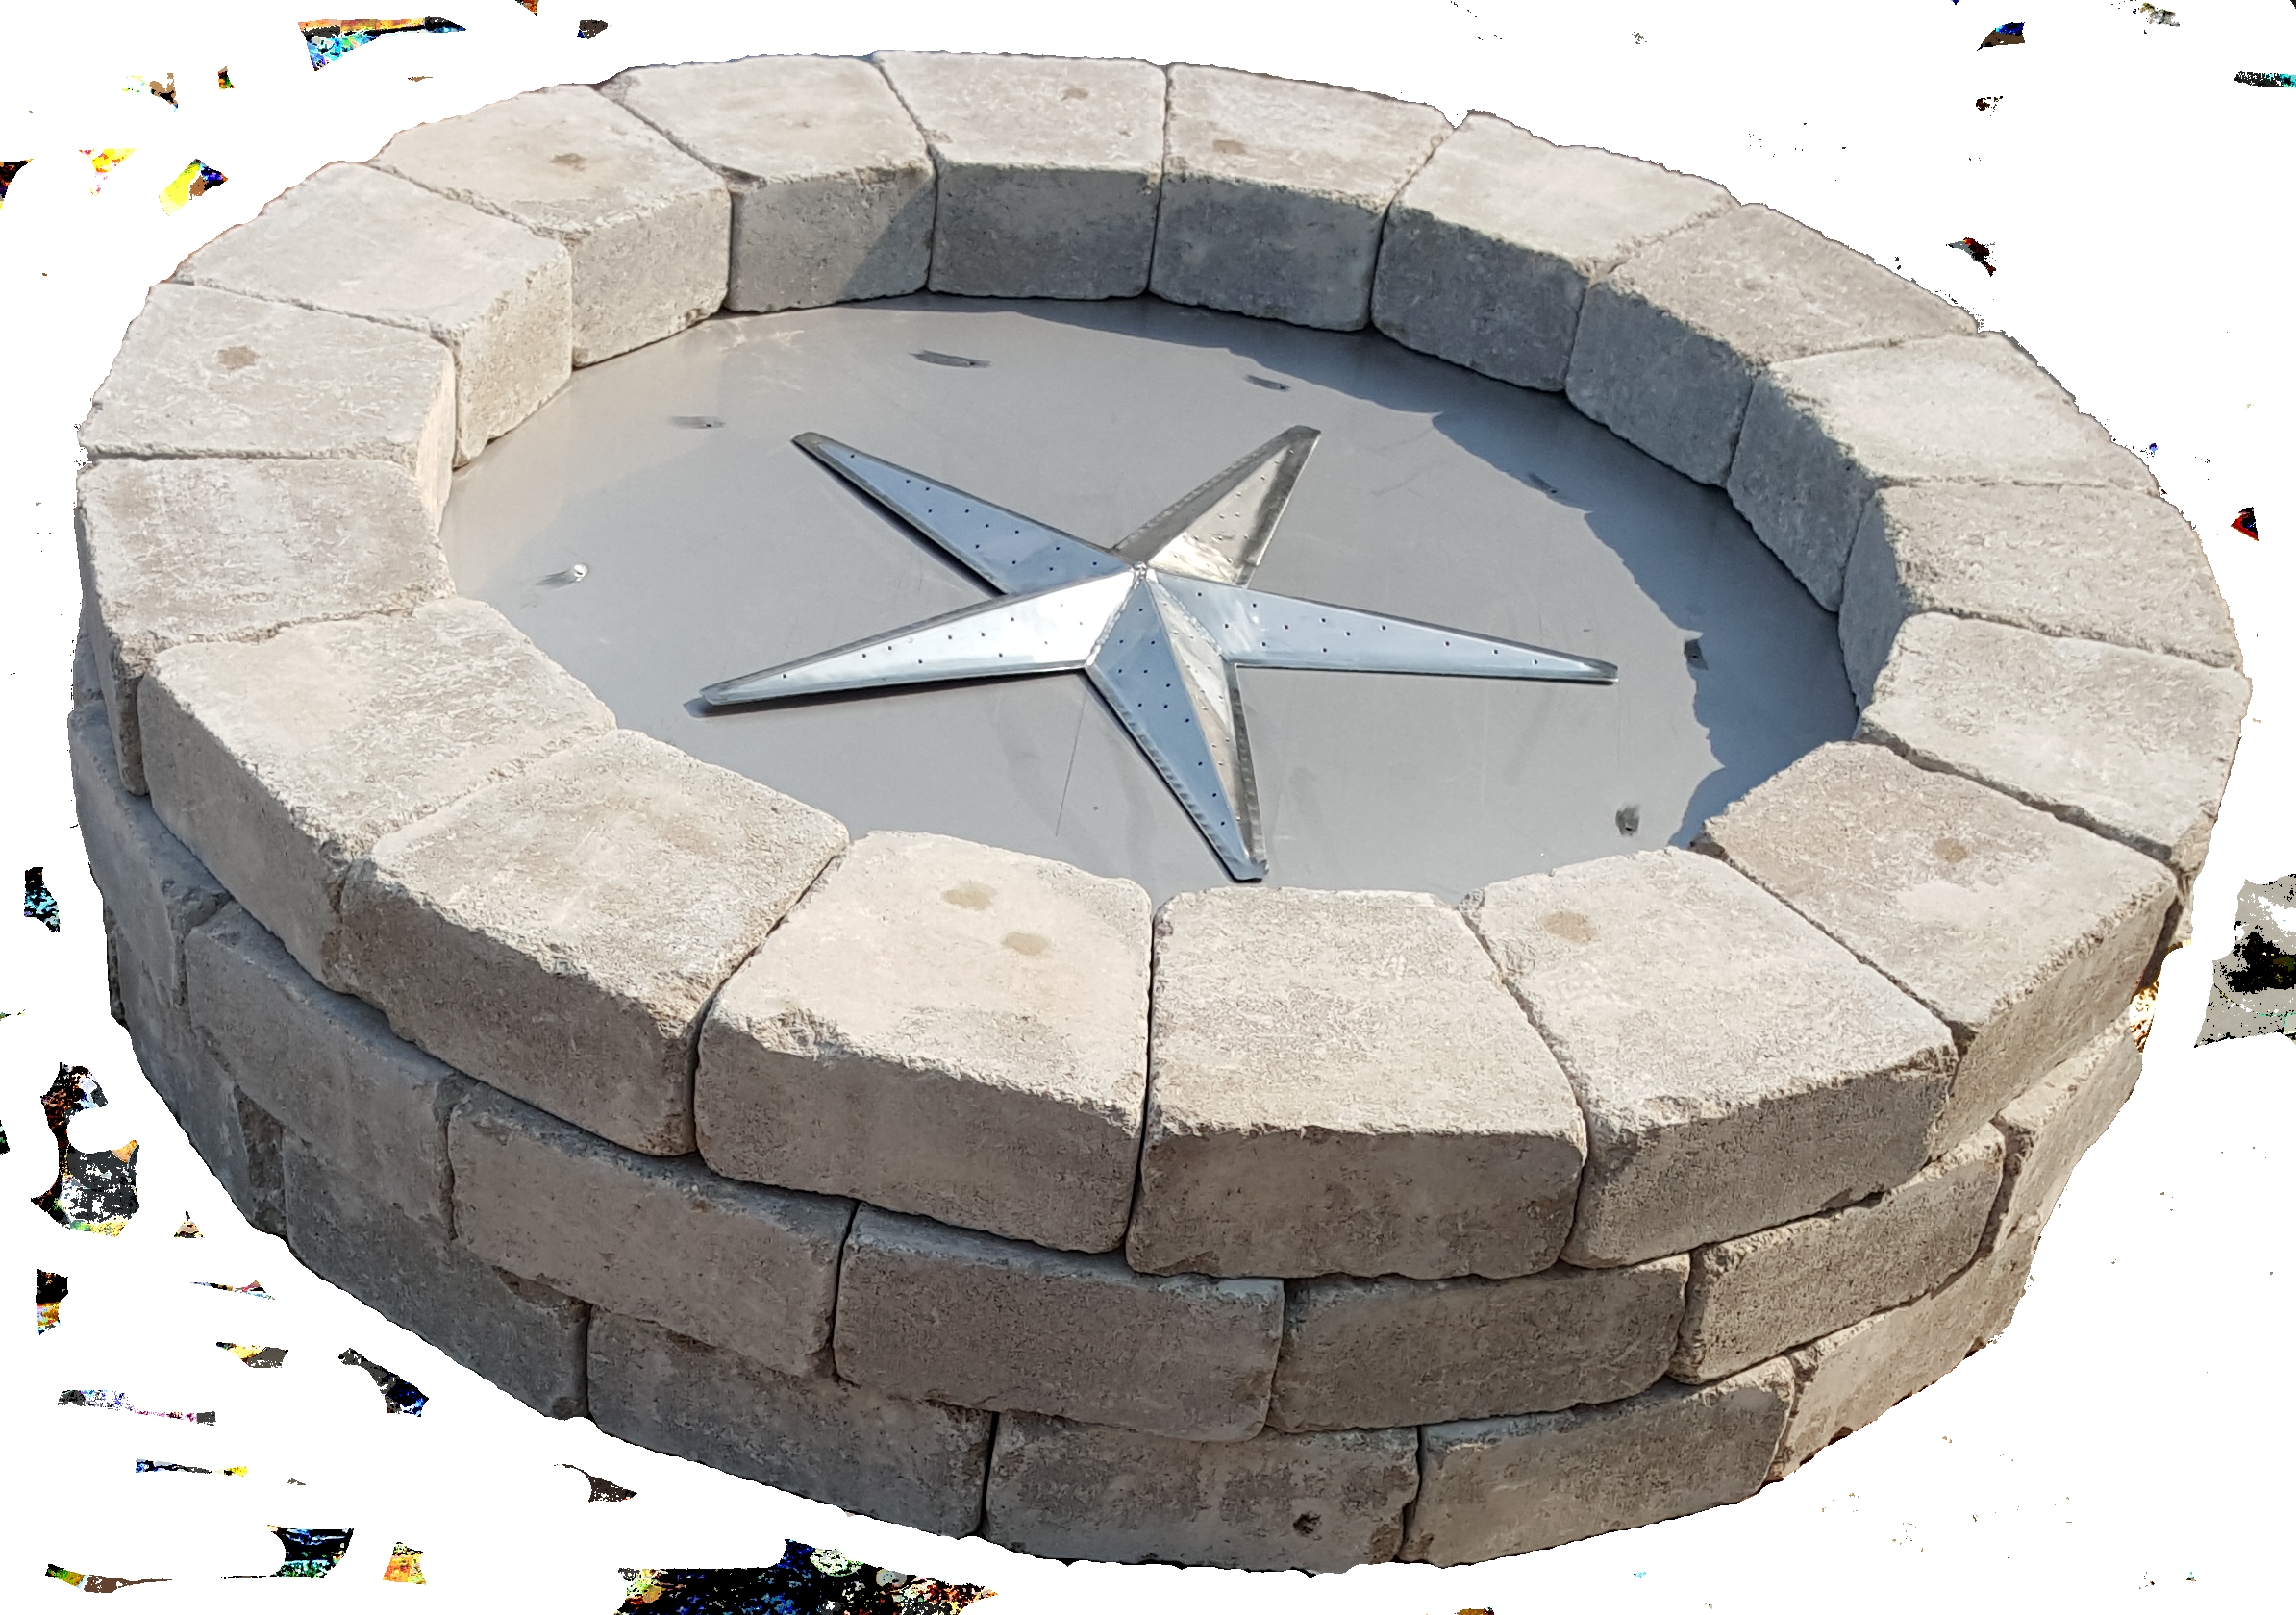 39 Inch Round Fire Pit Burner Kit Fireboulder Natural Stone with regard to dimensions 2388 X 1680